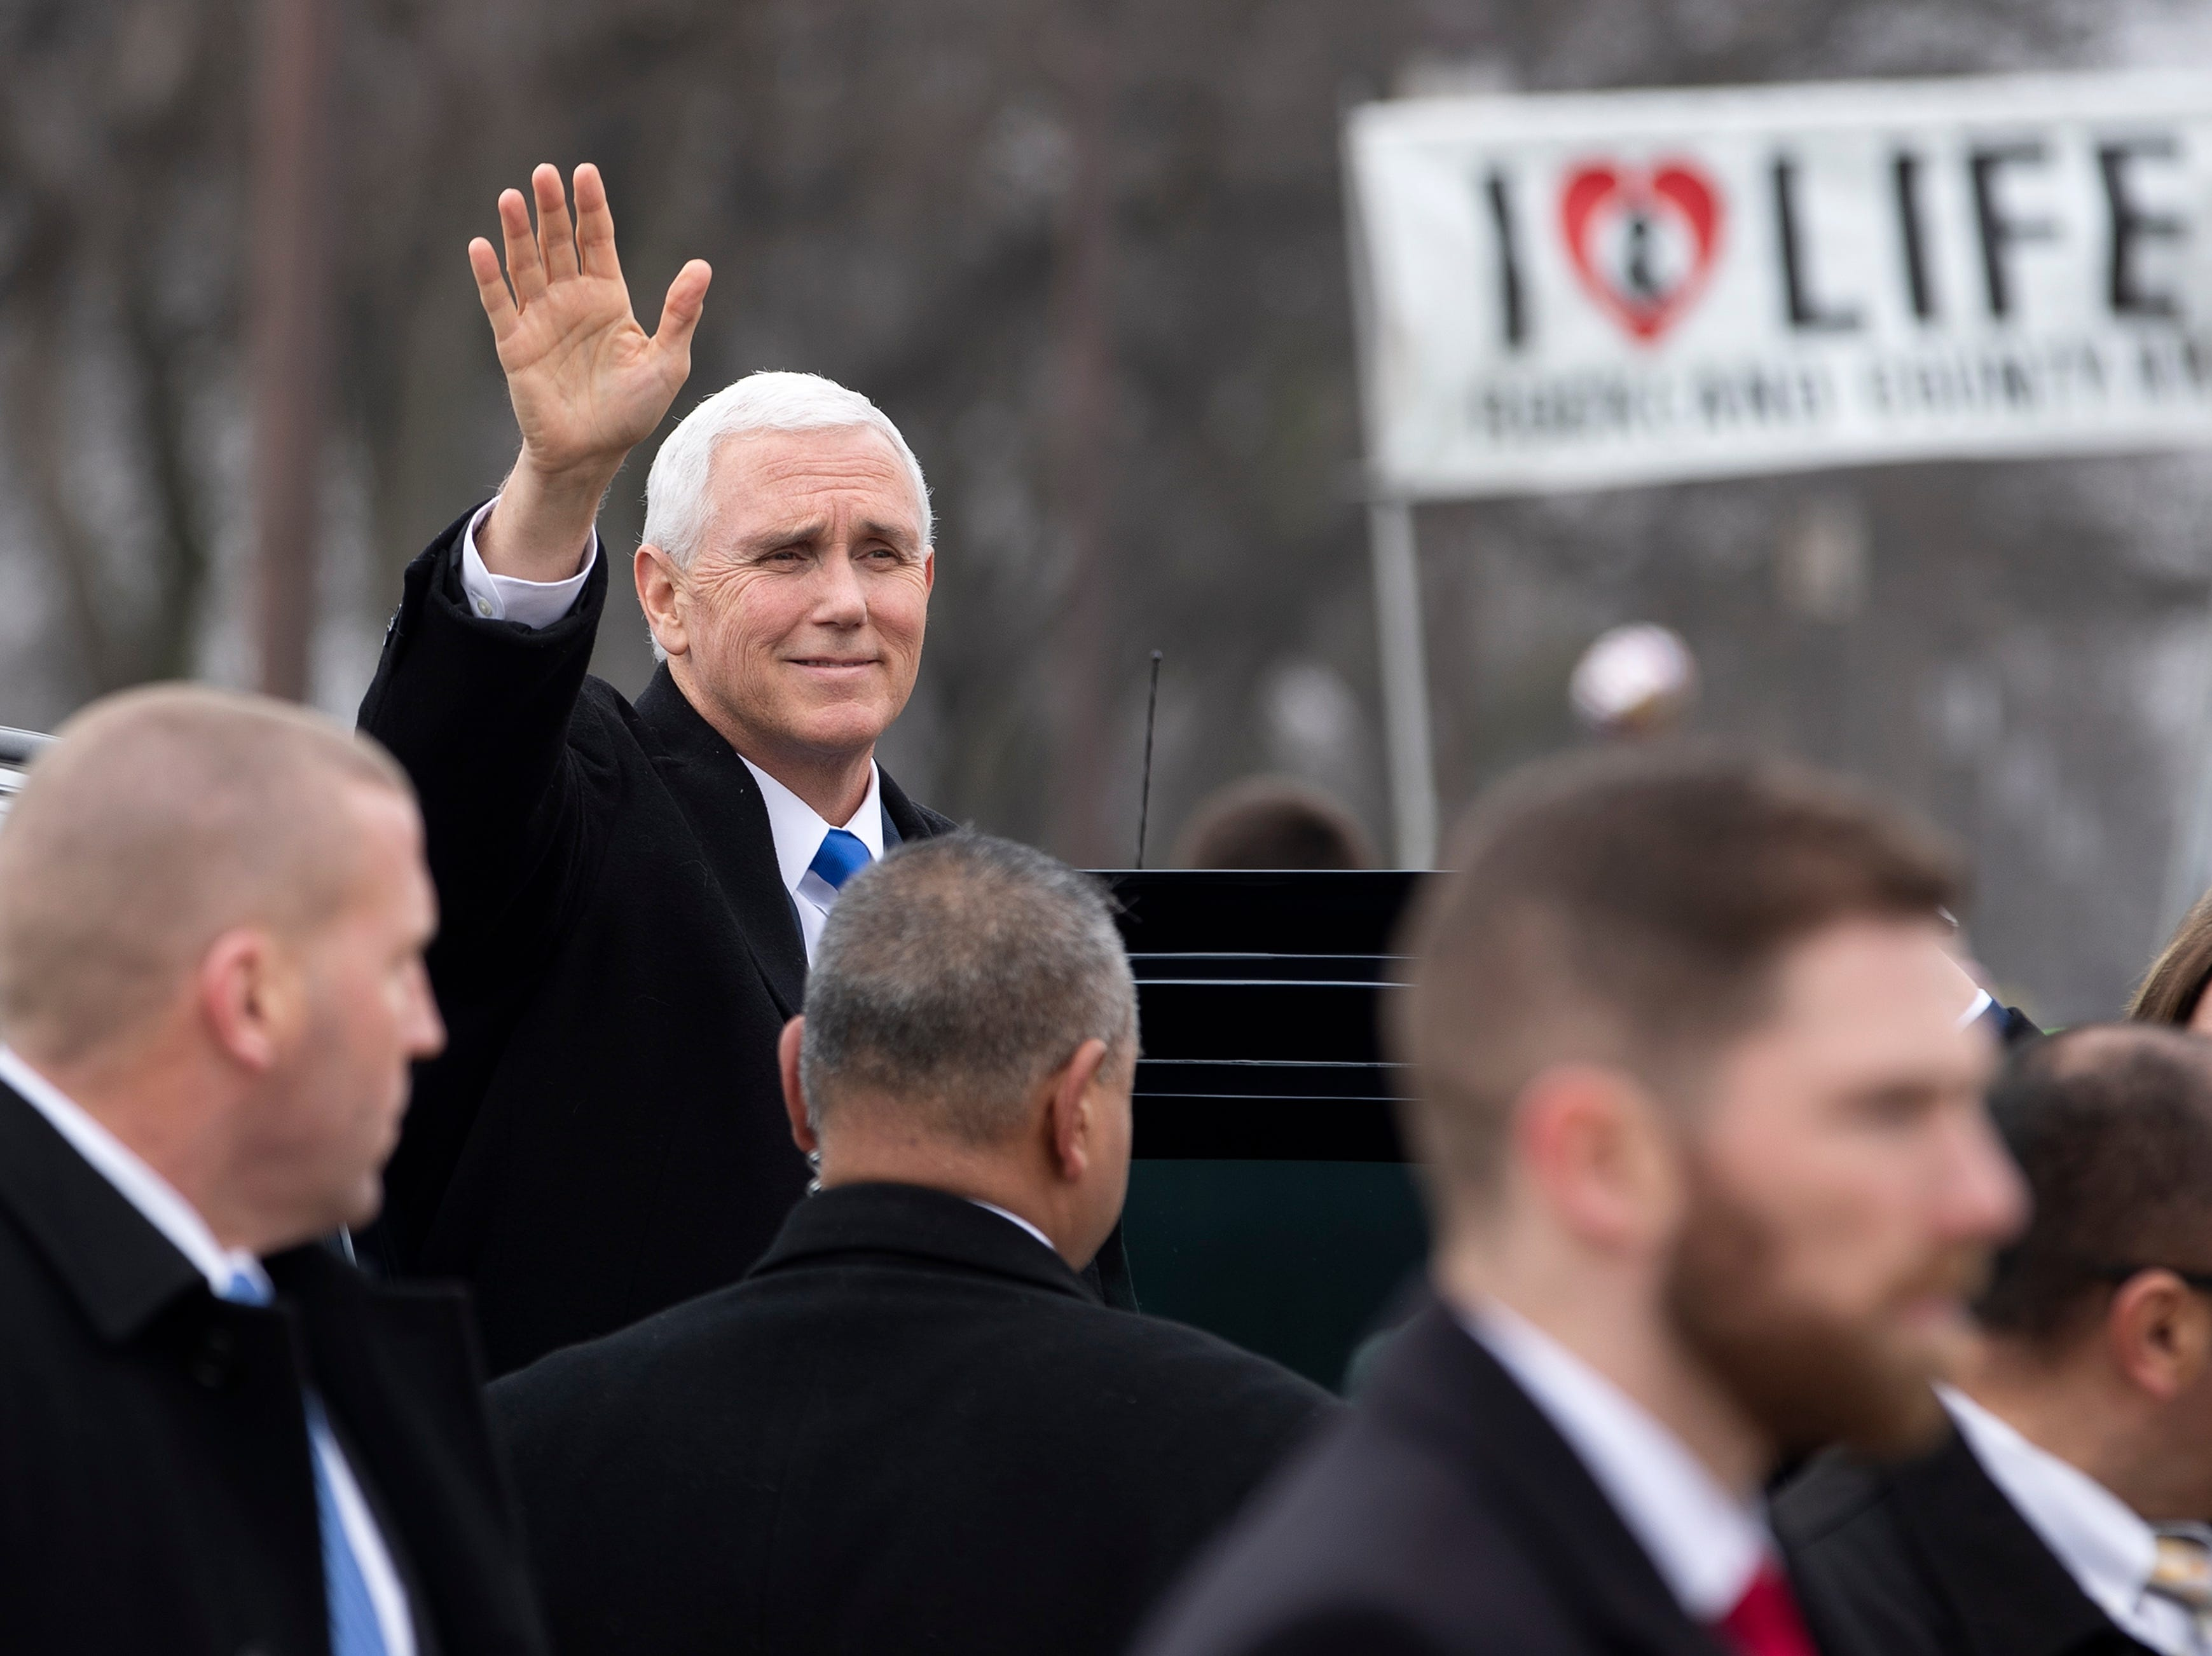 Vice President Mike Pence arrives to speak at the anti-abortion March for Life rally on the National Mall in Washington, DC on Jan. 18, 2019.